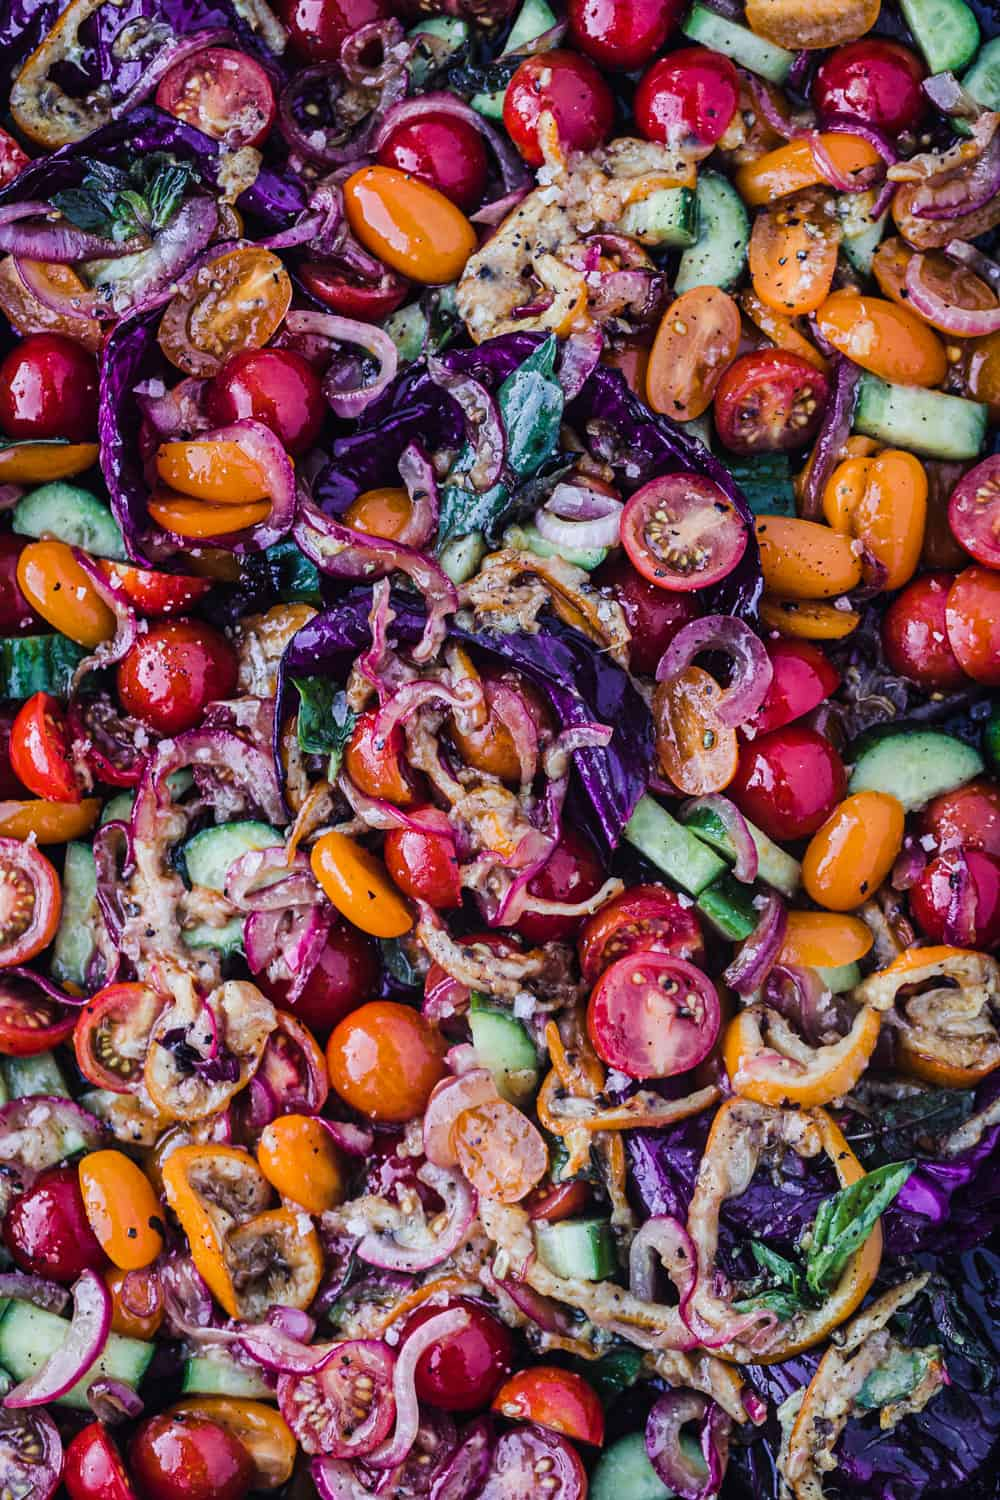 Red, orange and yellow cherry tomato salad, with lemon, purple cabbage and onion; overhead shot.